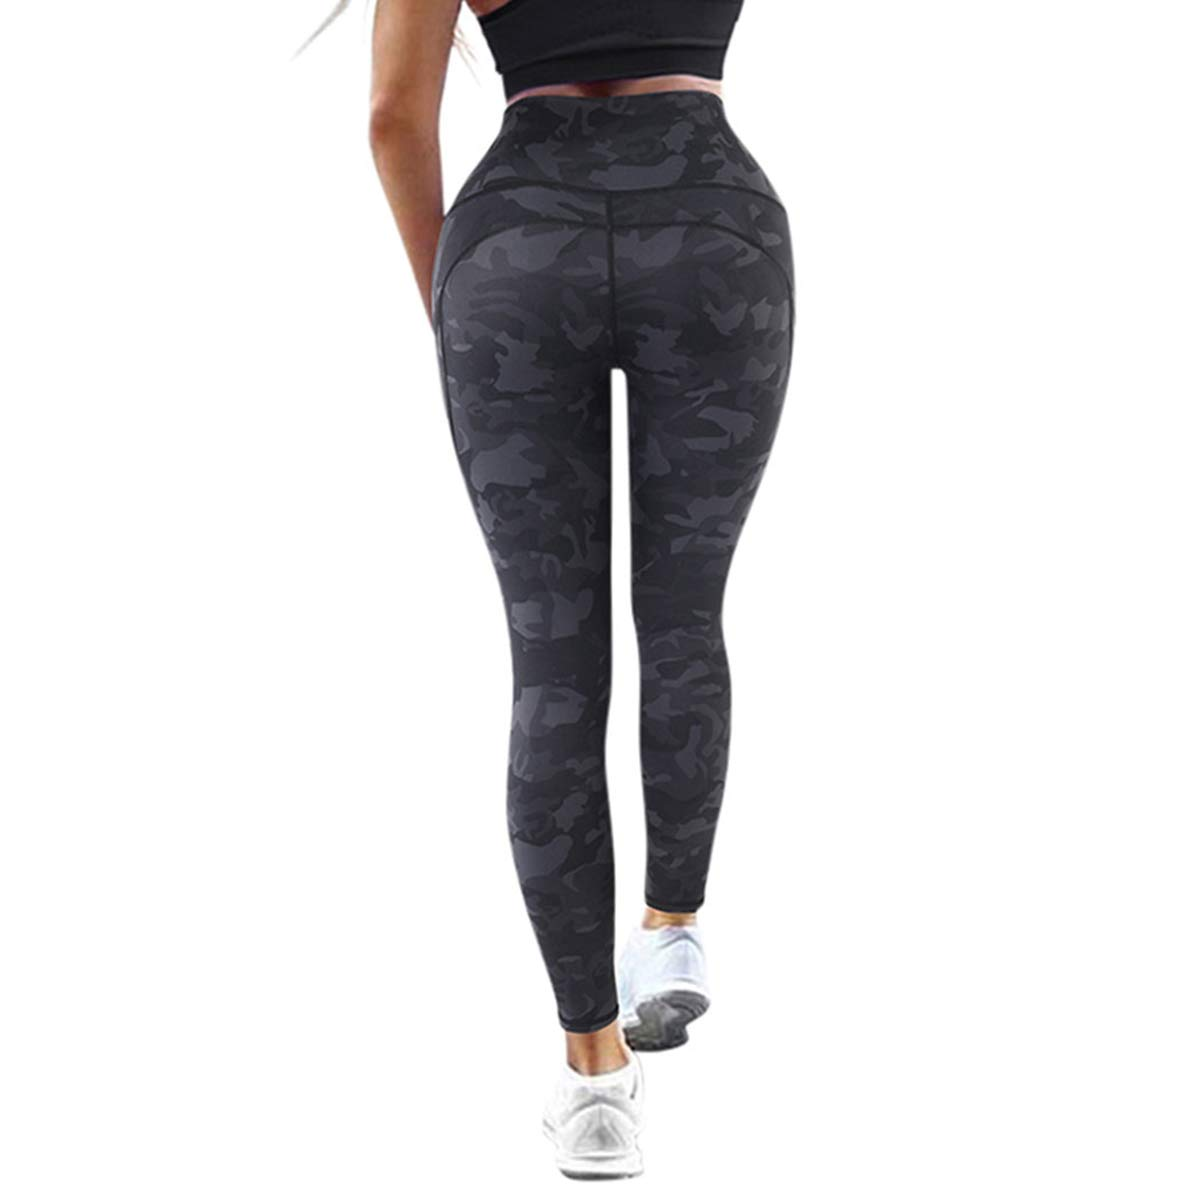 DOULAFASS Womens Camo Yoga Pants High Waisted Tummy Control Squat Proof Workout Leggings for Women(Small, Camouflage)